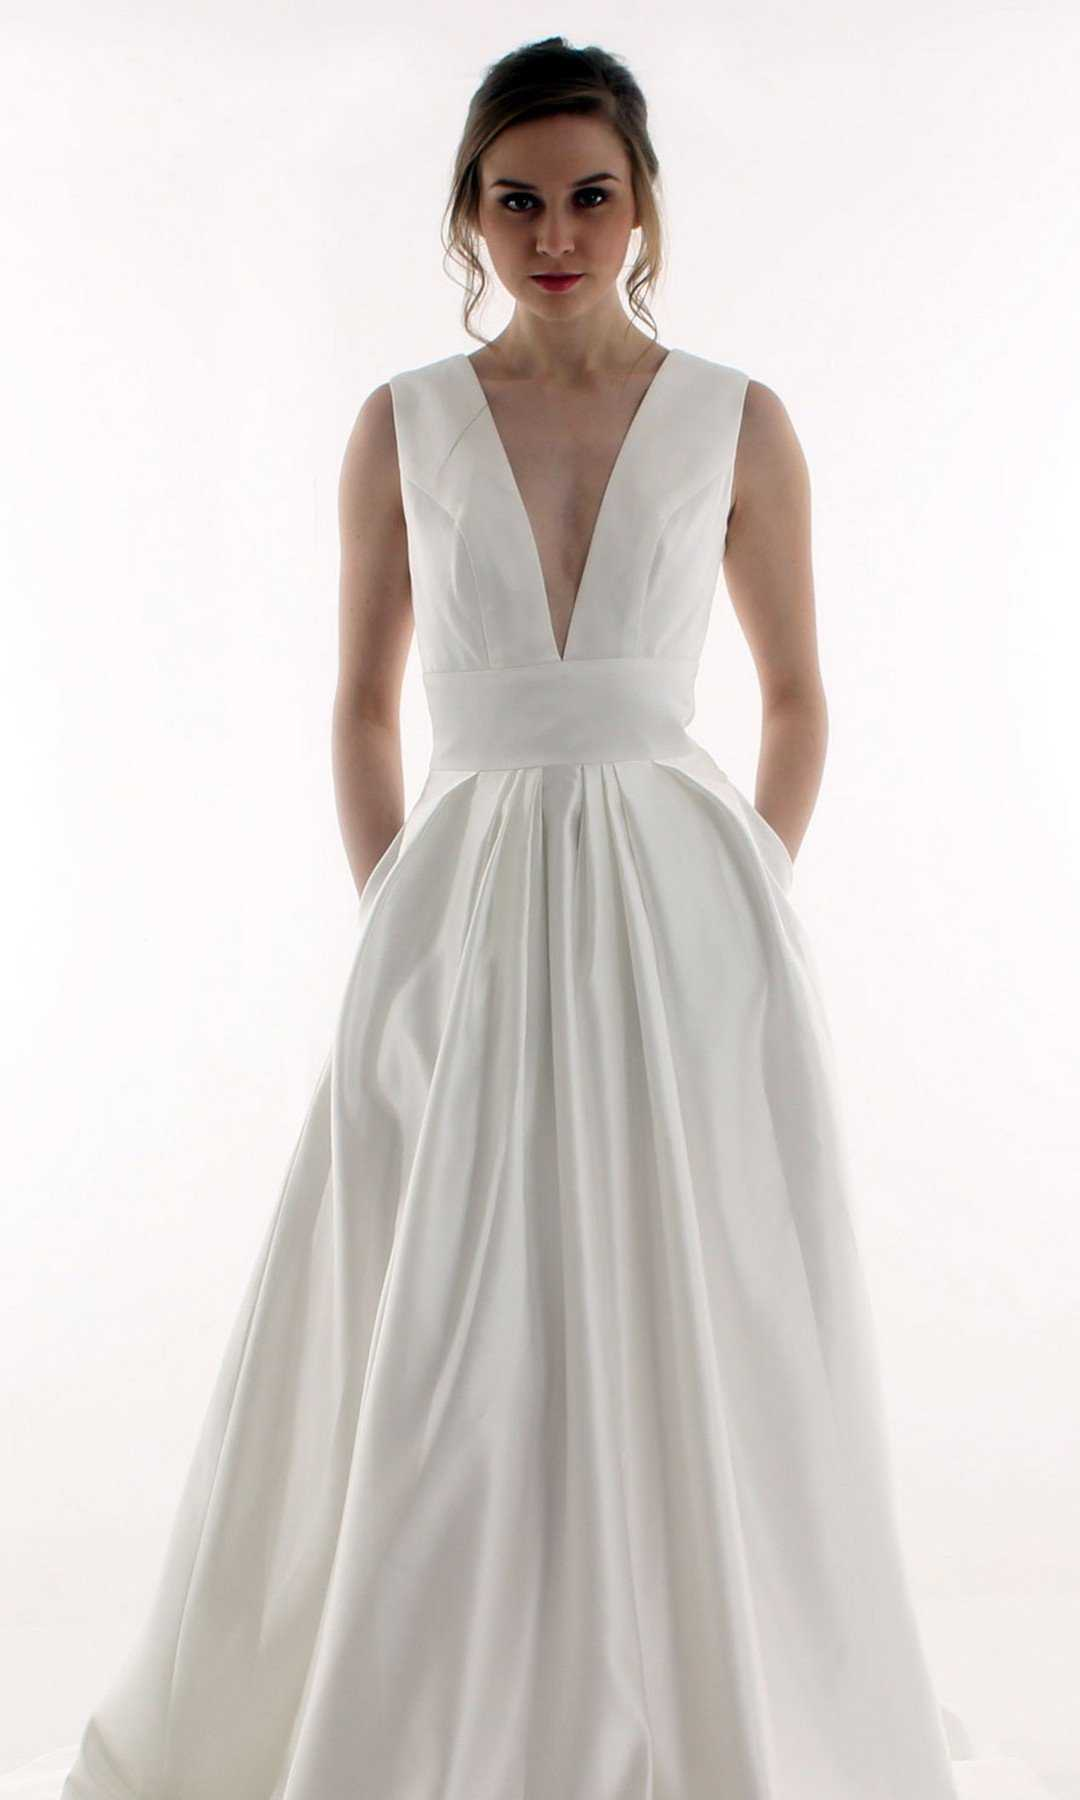 Kaela Bridal: Designer Wedding Dresses Online - Bridalwear Shops